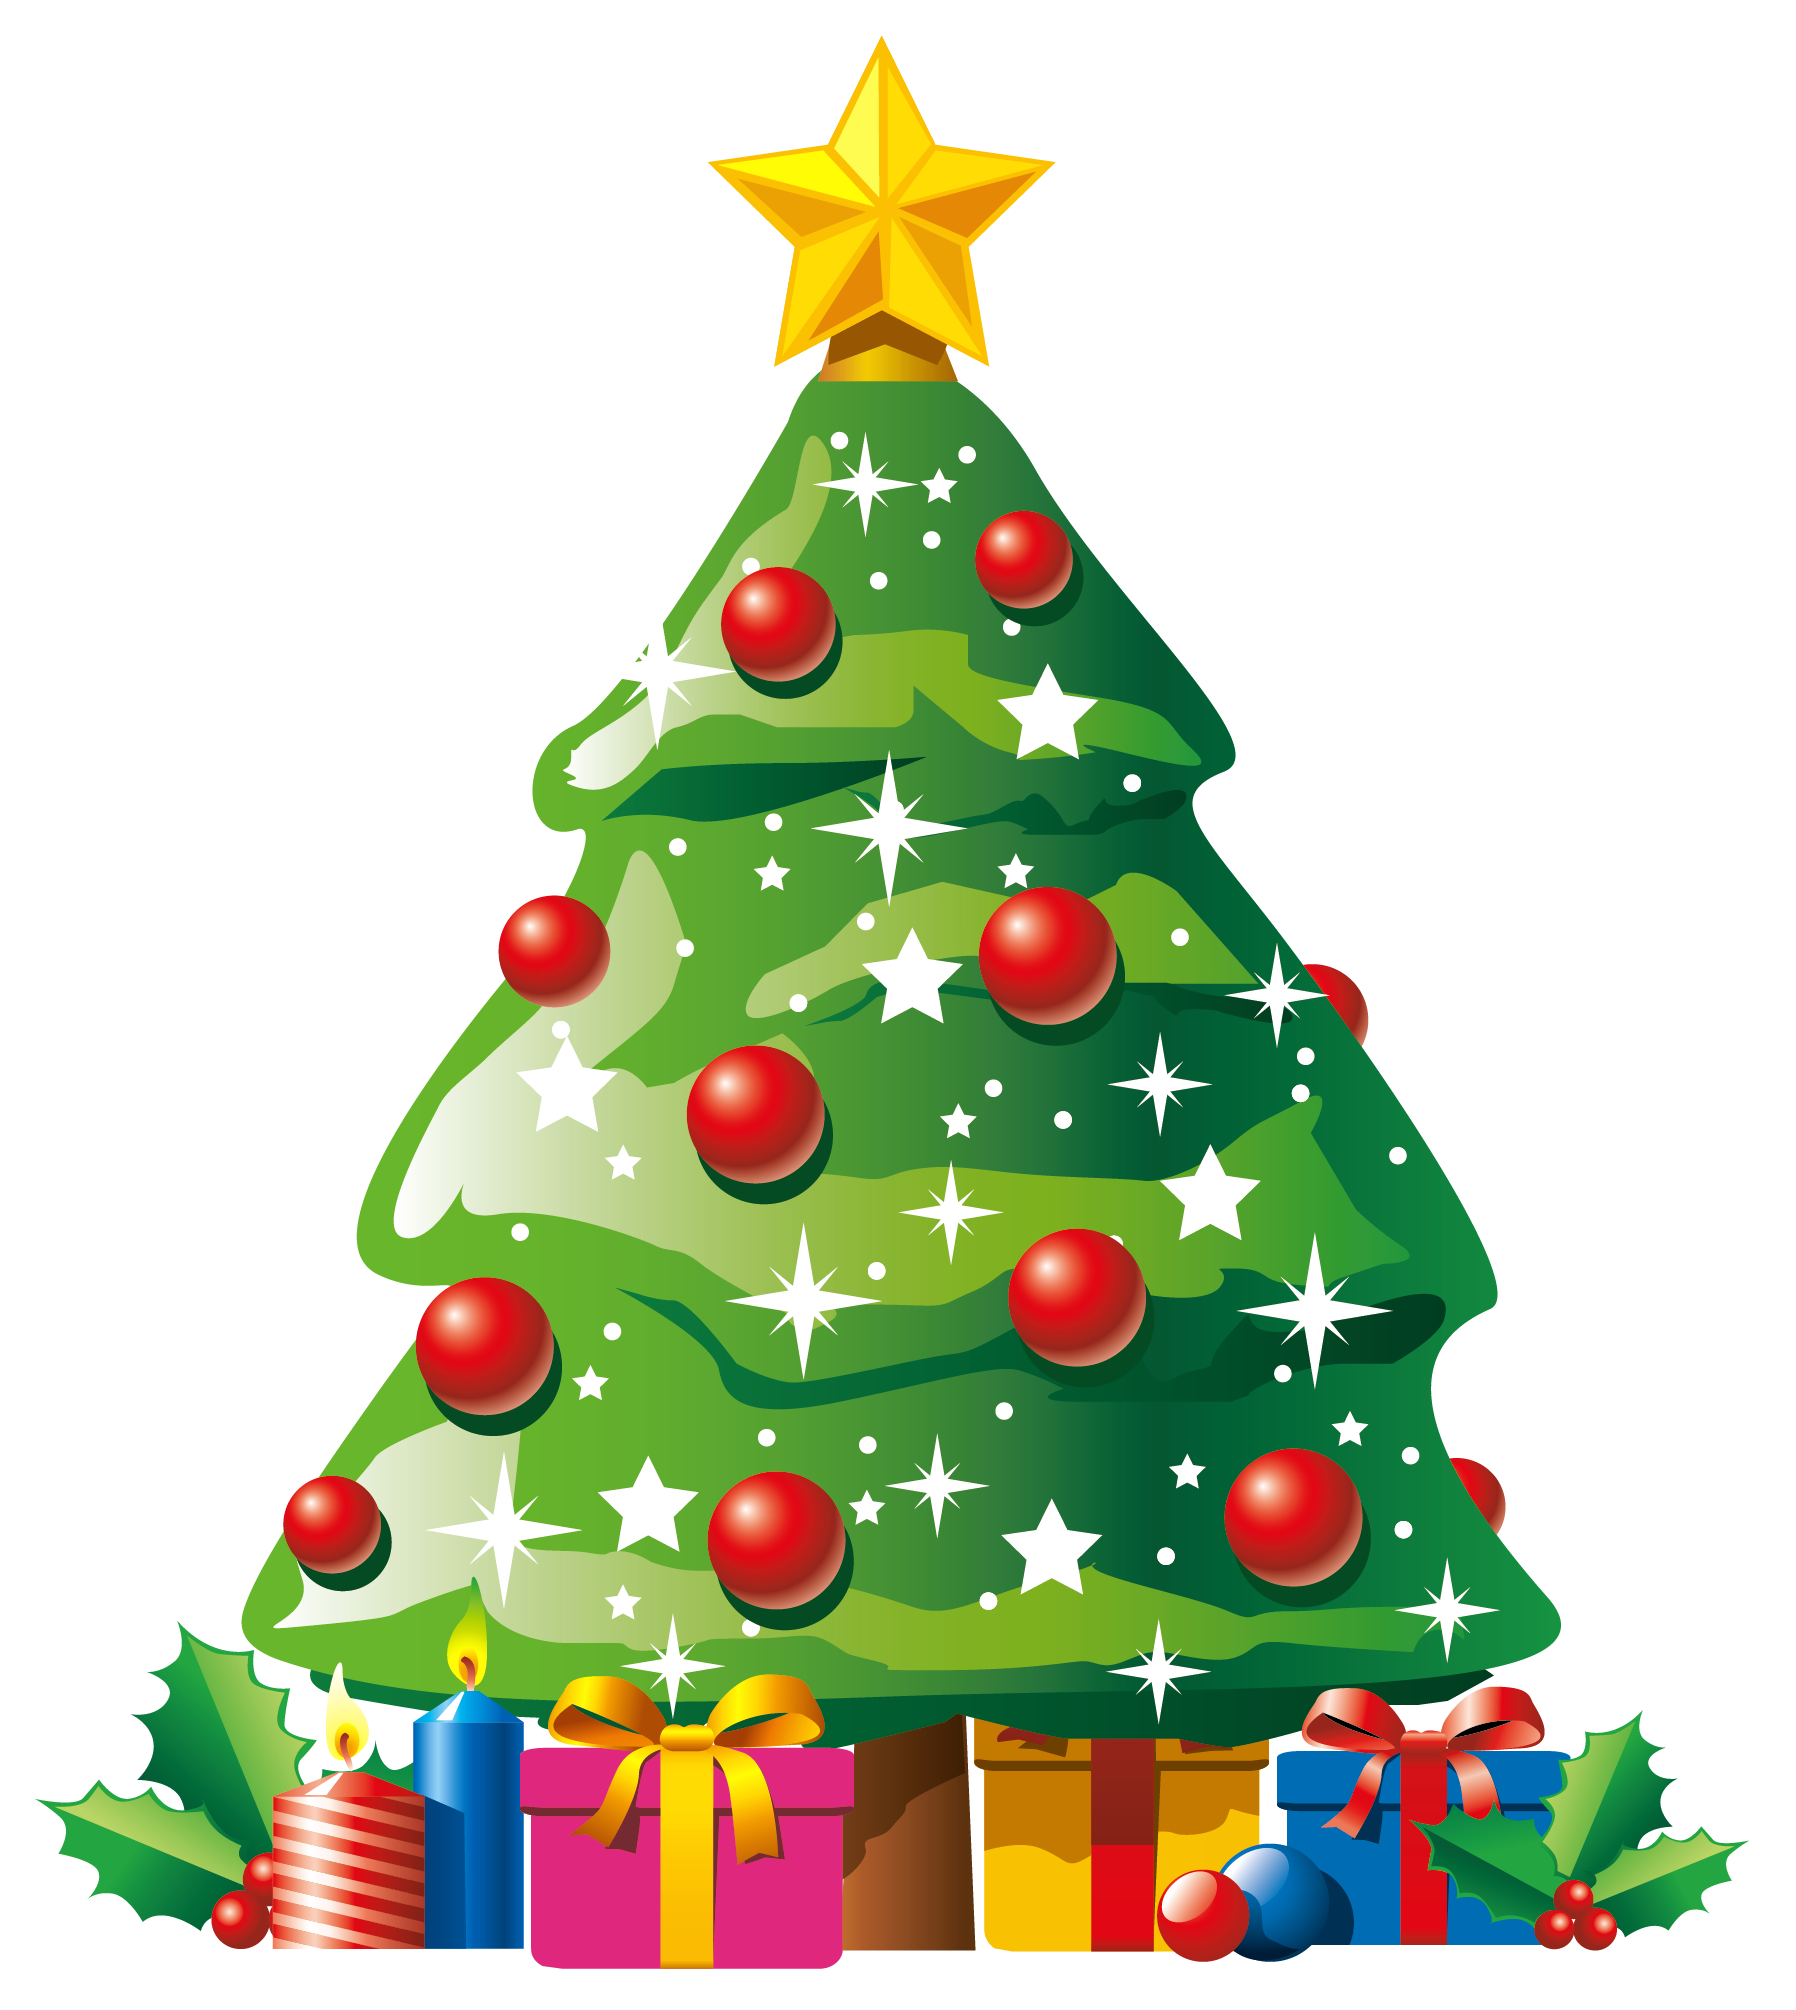 Transparent Deco Christmas Tree with Gifts Clipart.